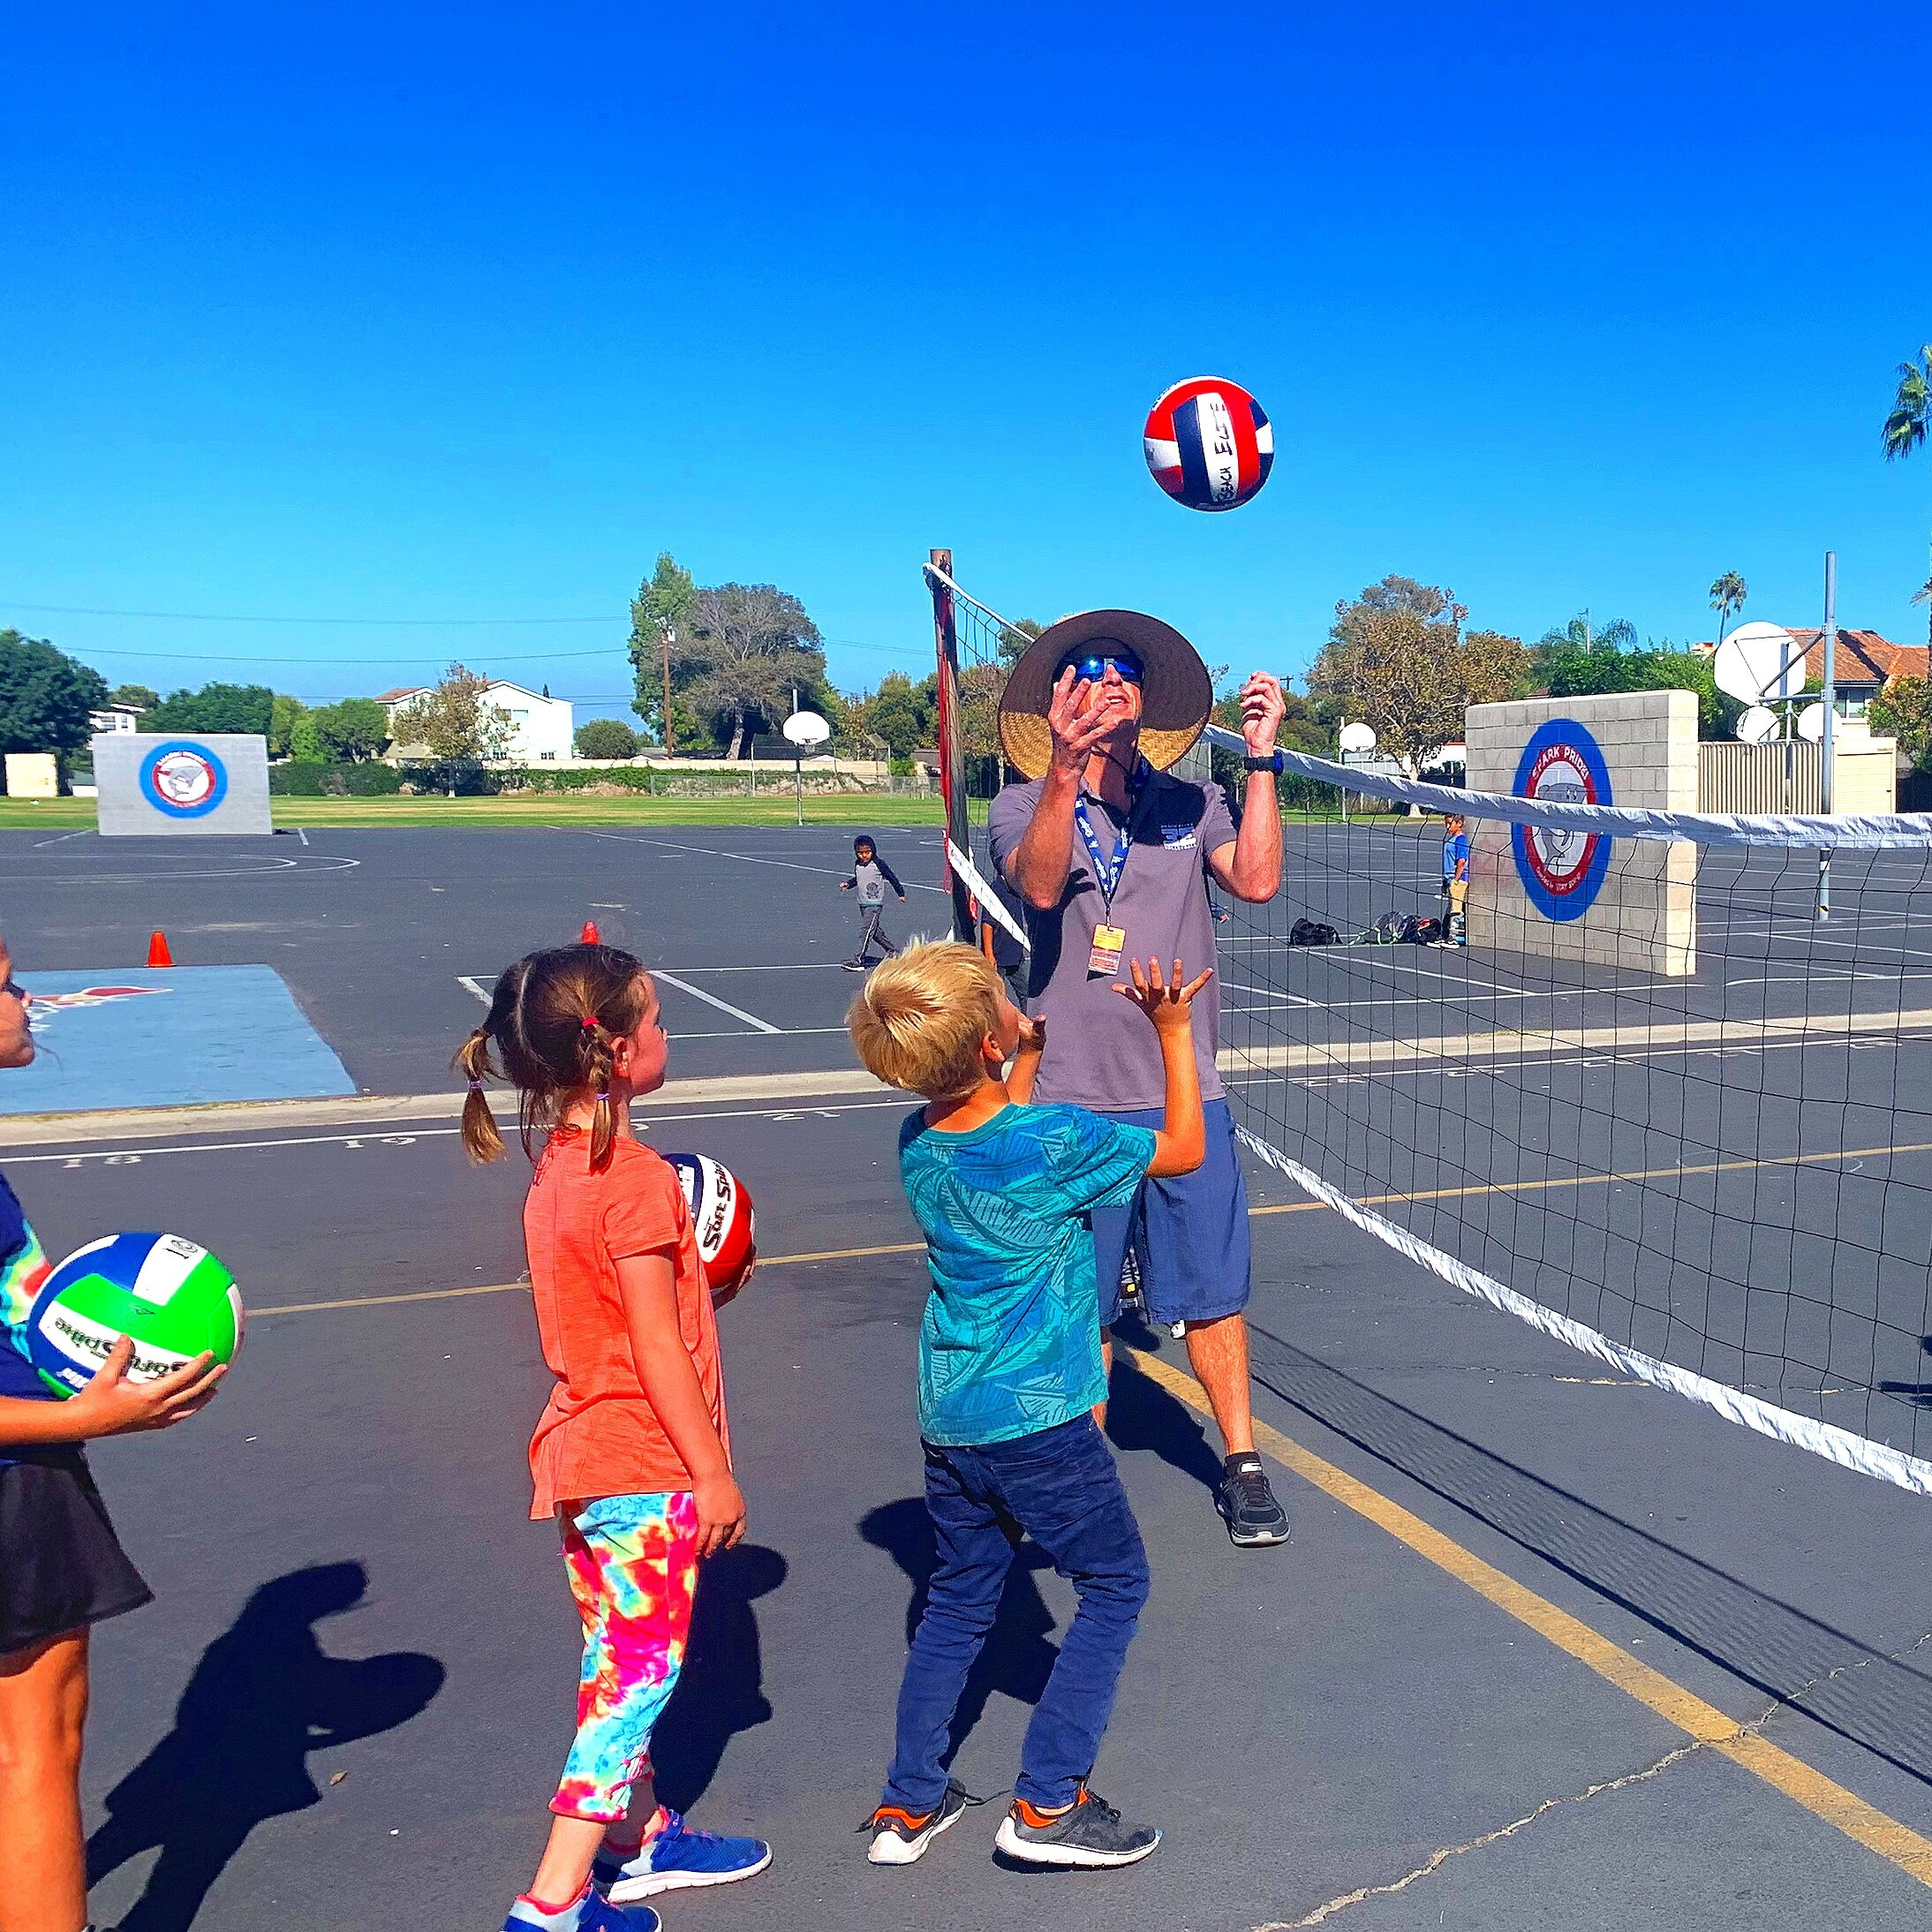 YOUTH CLASSES - NEWPORT BEACH - ➜ Year round beach and indoor programs➜ ages from 7 to 16 boys and girls➜ Have fun and get better!